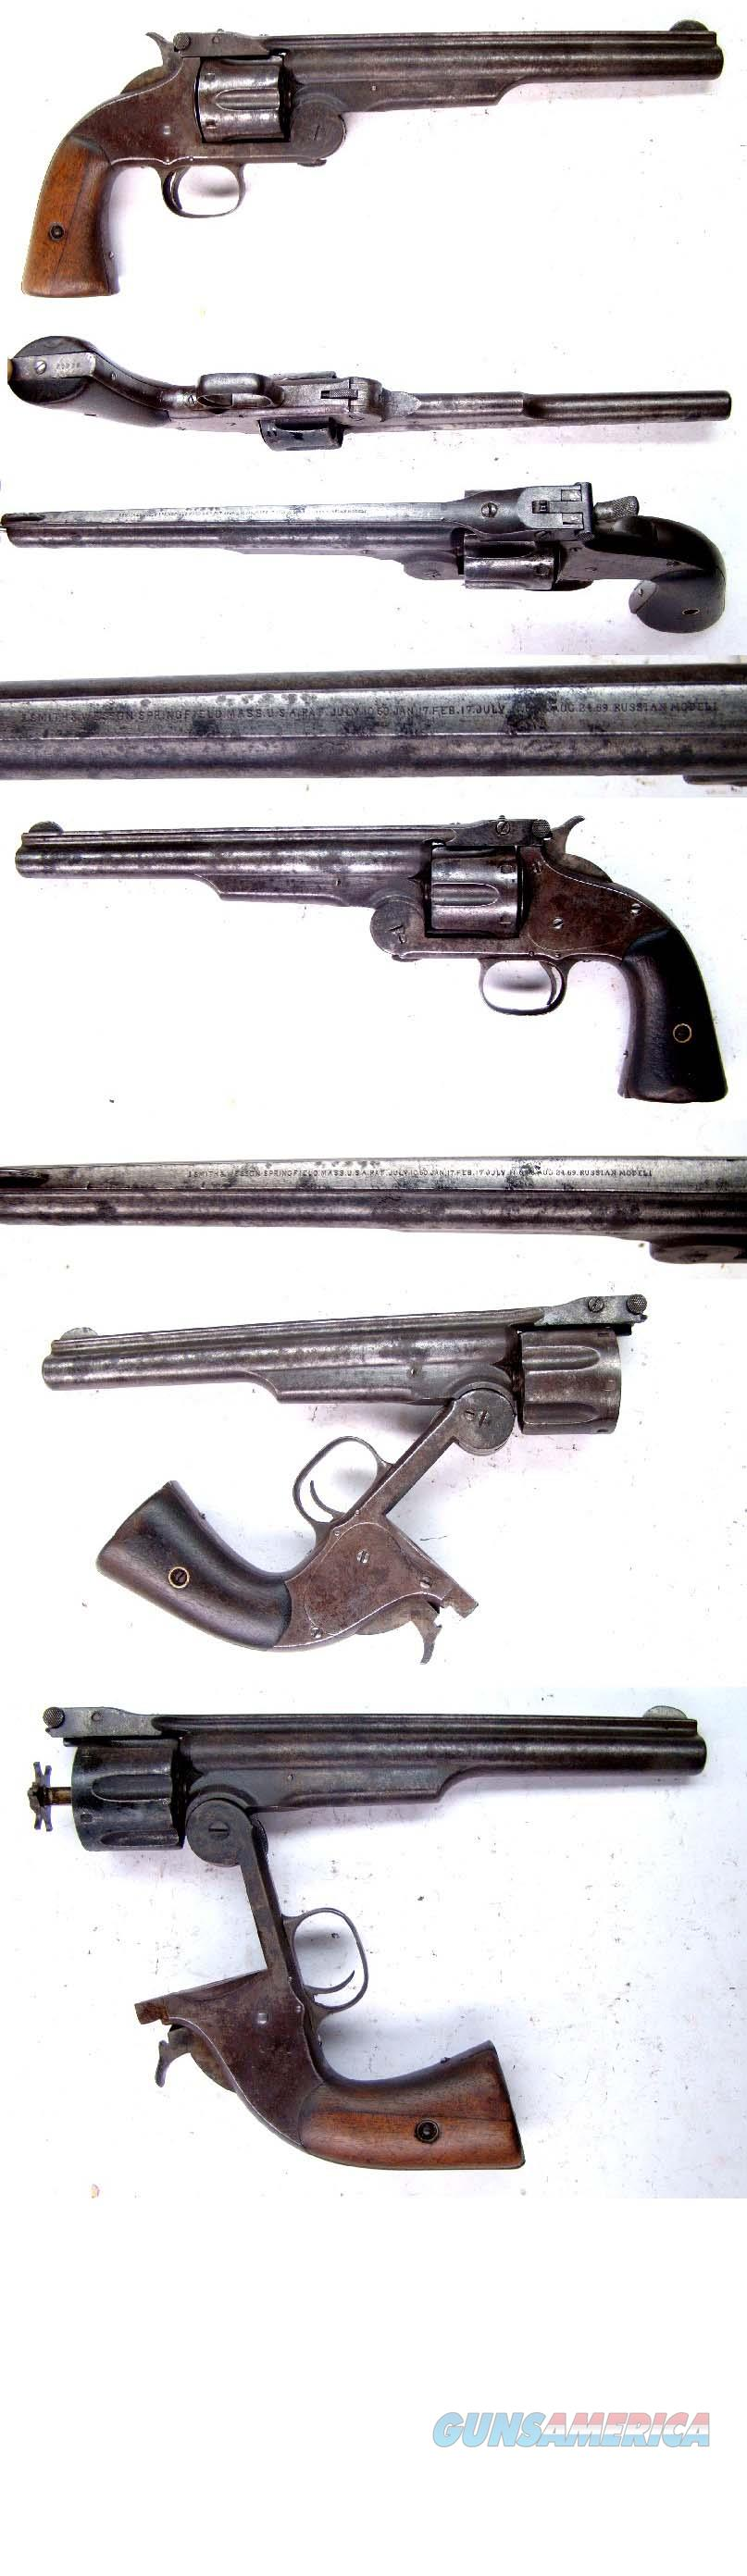 Smith and Wesson 2nd Model American russian model  Guns > Pistols > Smith & Wesson Revolvers > Pre-1899